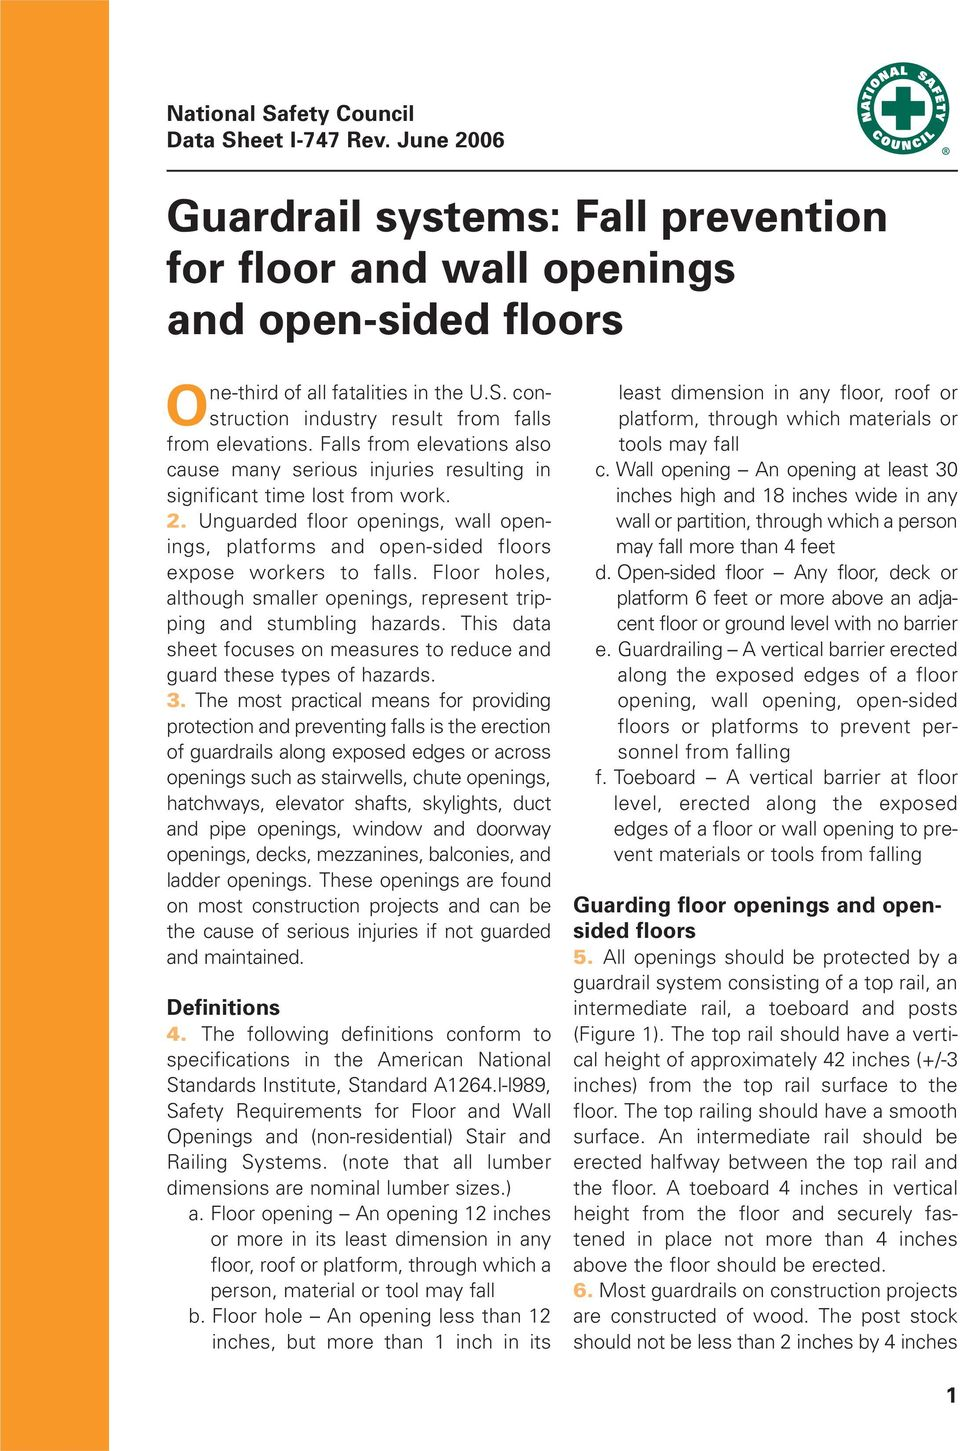 Unguarded floor openings, wall openings, platforms and open-sided floors expose workers to falls. Floor holes, although smaller openings, represent tripping and stumbling hazards.